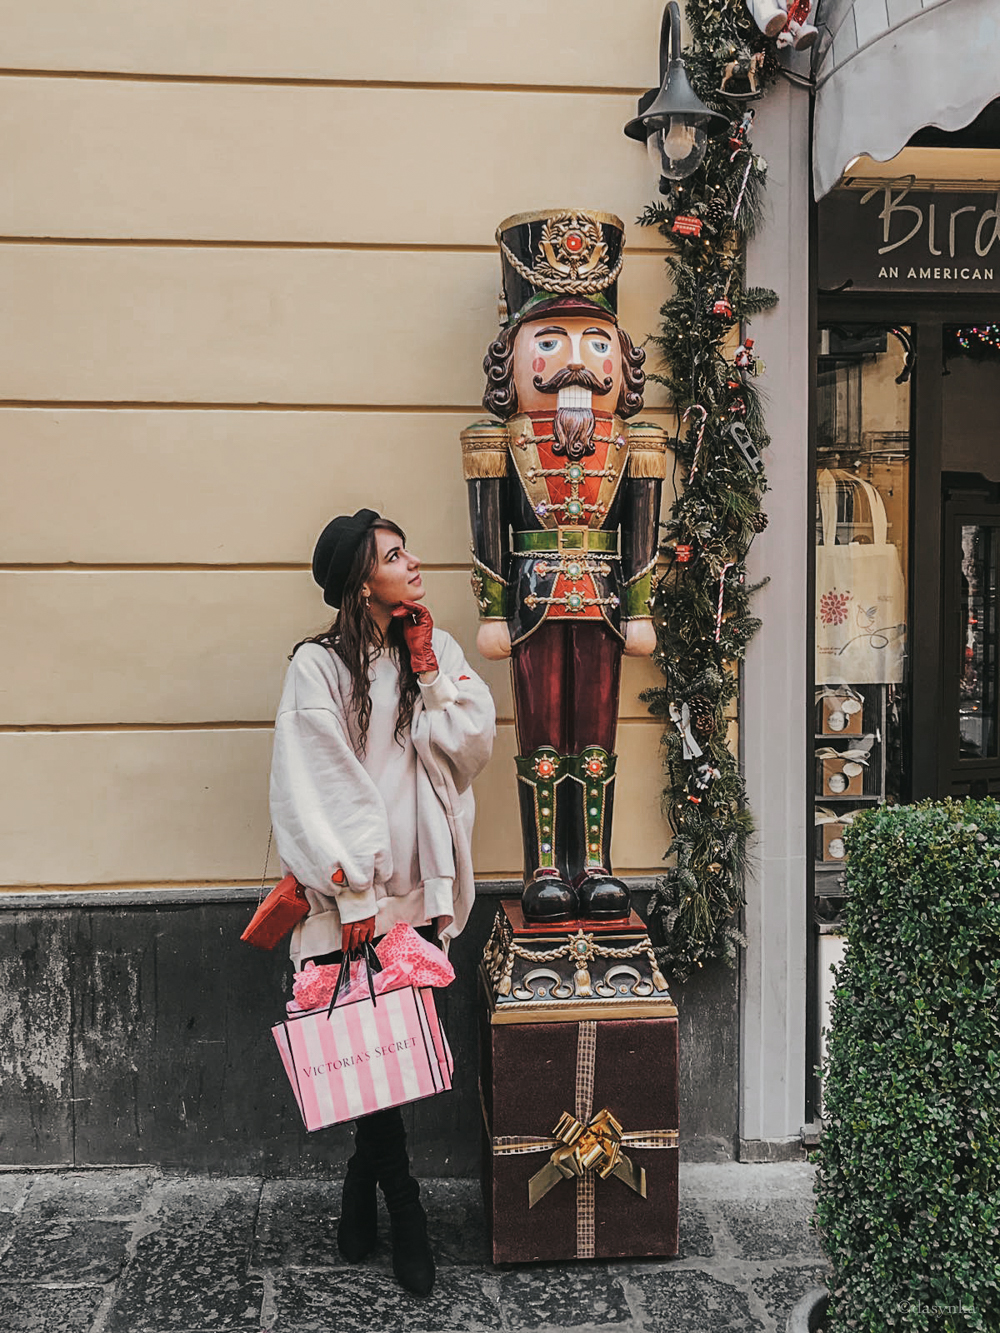 dasynka-fashion-blog-blogger-shooting-model-naples-boots-high-gloves-red-harrods-sweater-bag-hat-pochette-nutcracker-christmas-victoria-secret-white-oversize-overknee-black-ideas-outfit-look-style-chic-elegant-festive-shopping